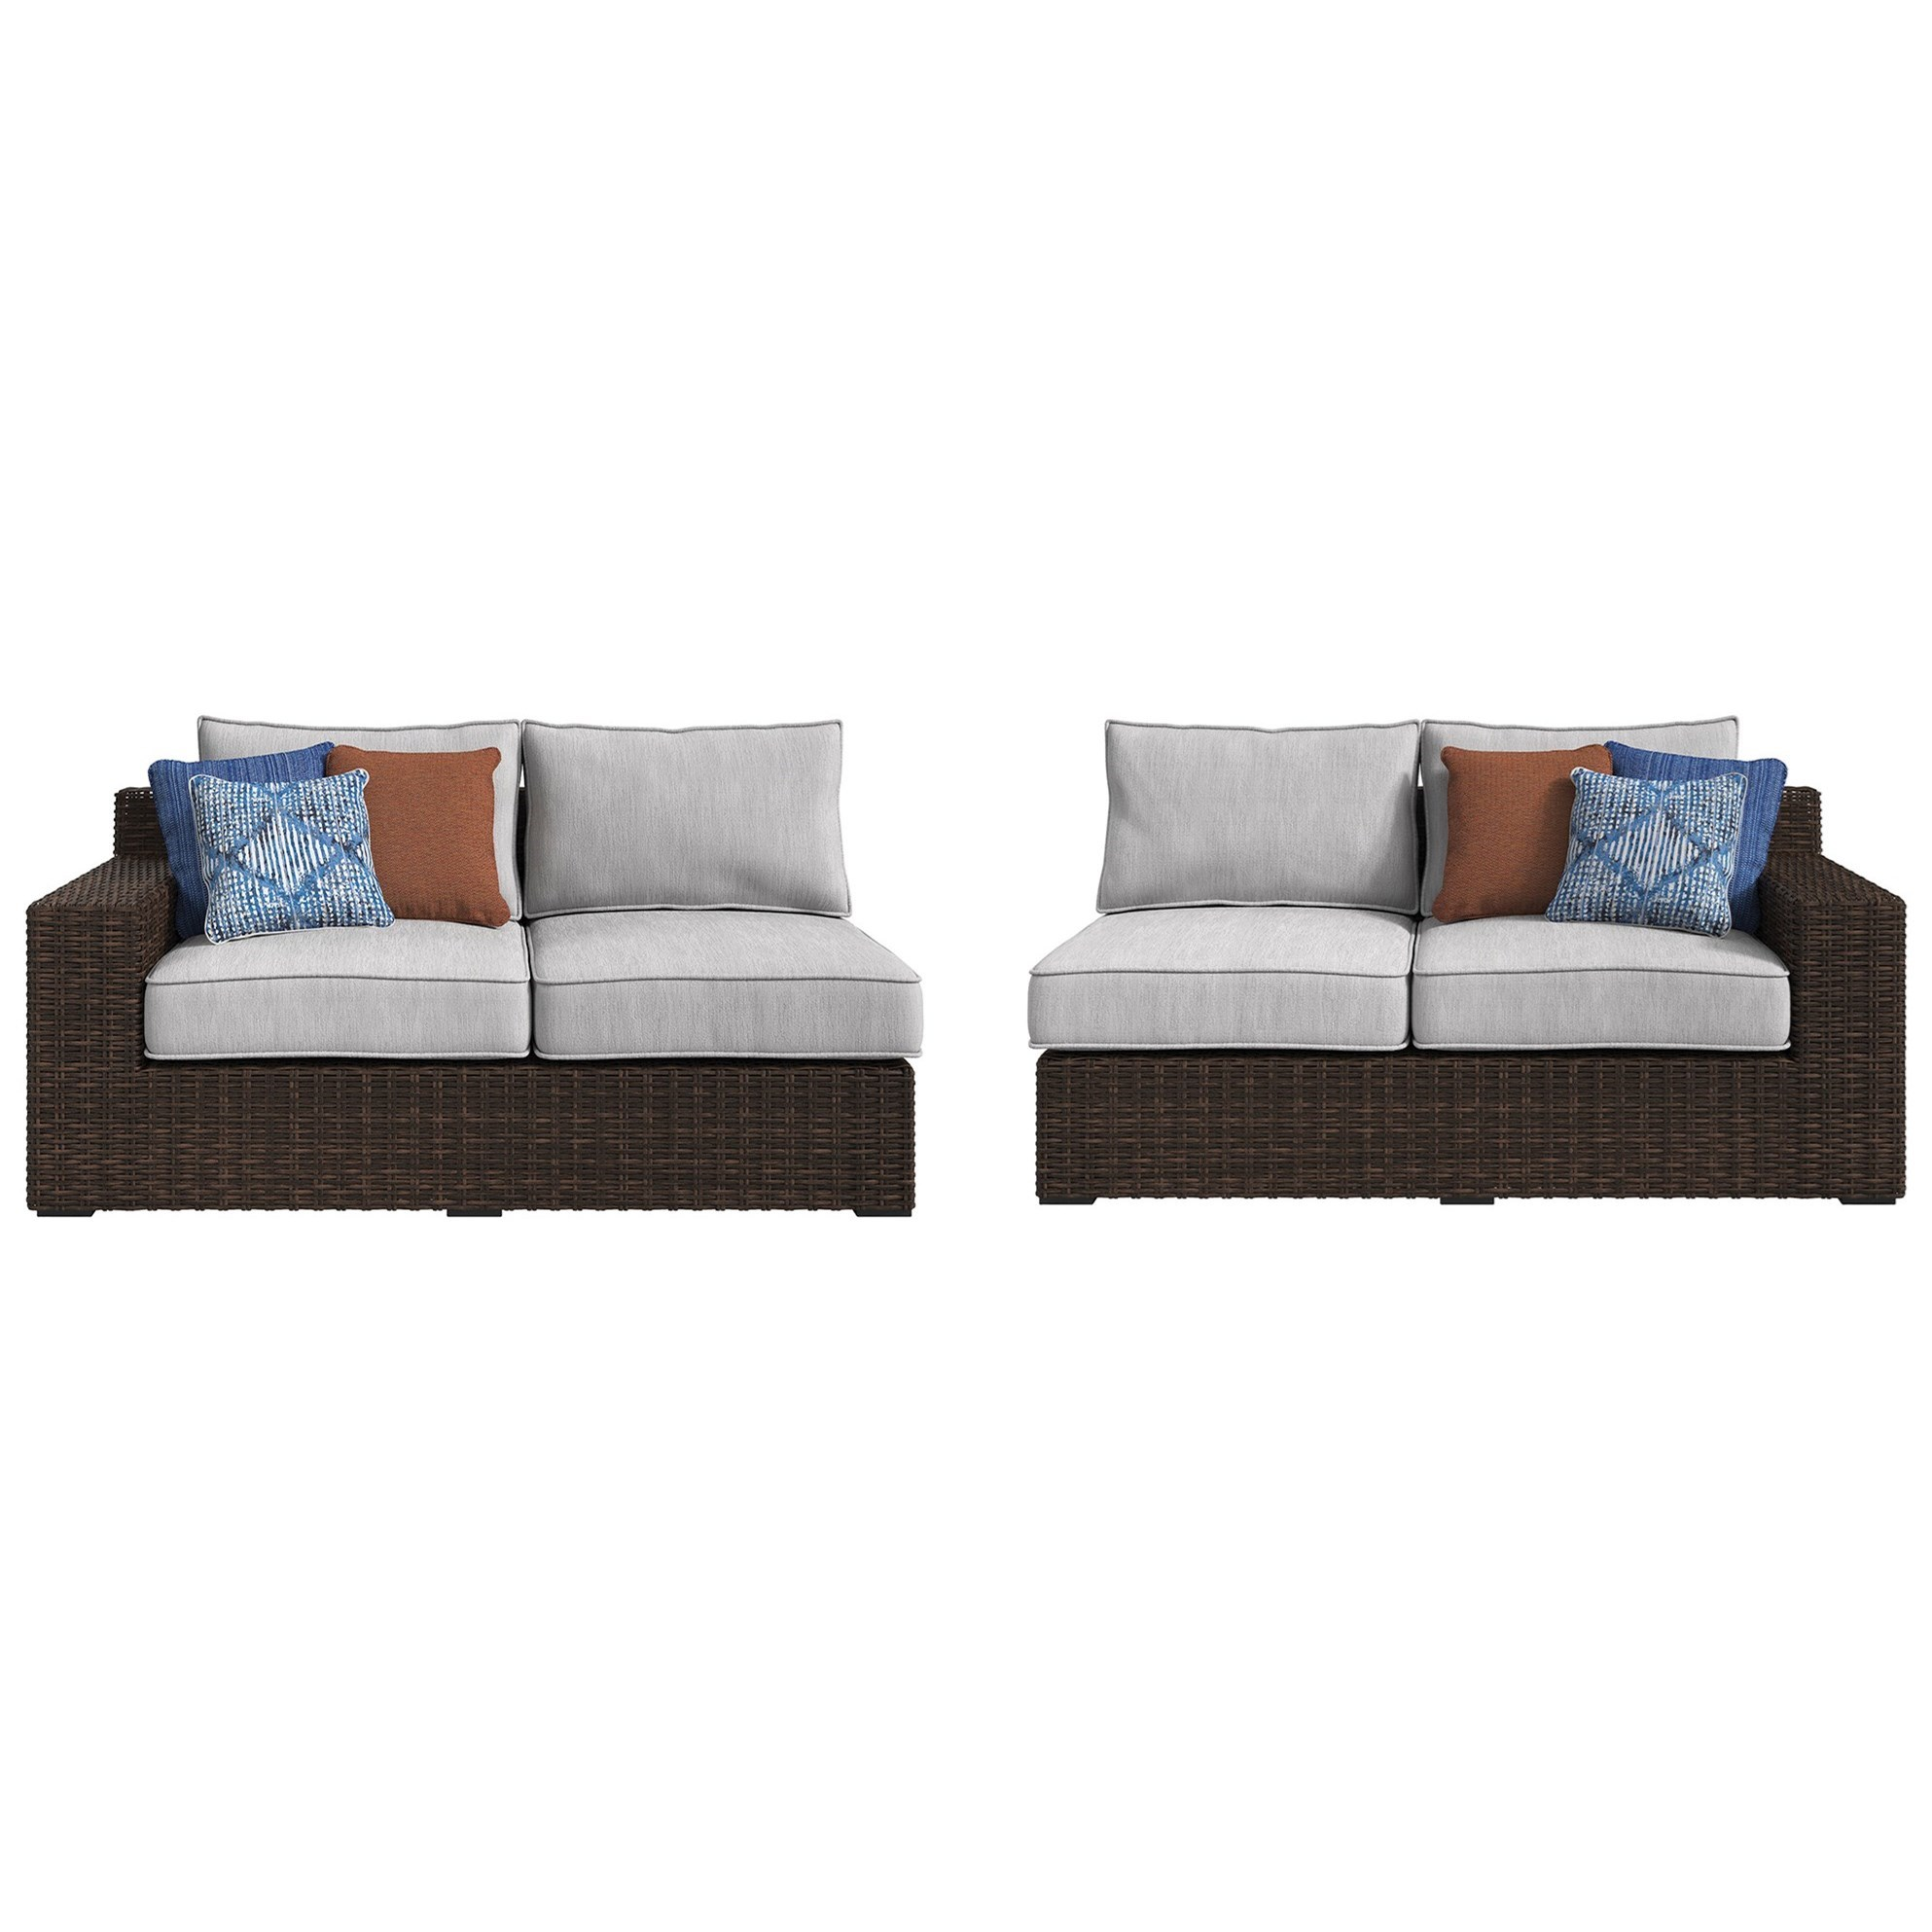 Signature Design by Ashley Alta Grande RAF Loveseat & LAF Loveseat with Cushion - Item Number: P782-854